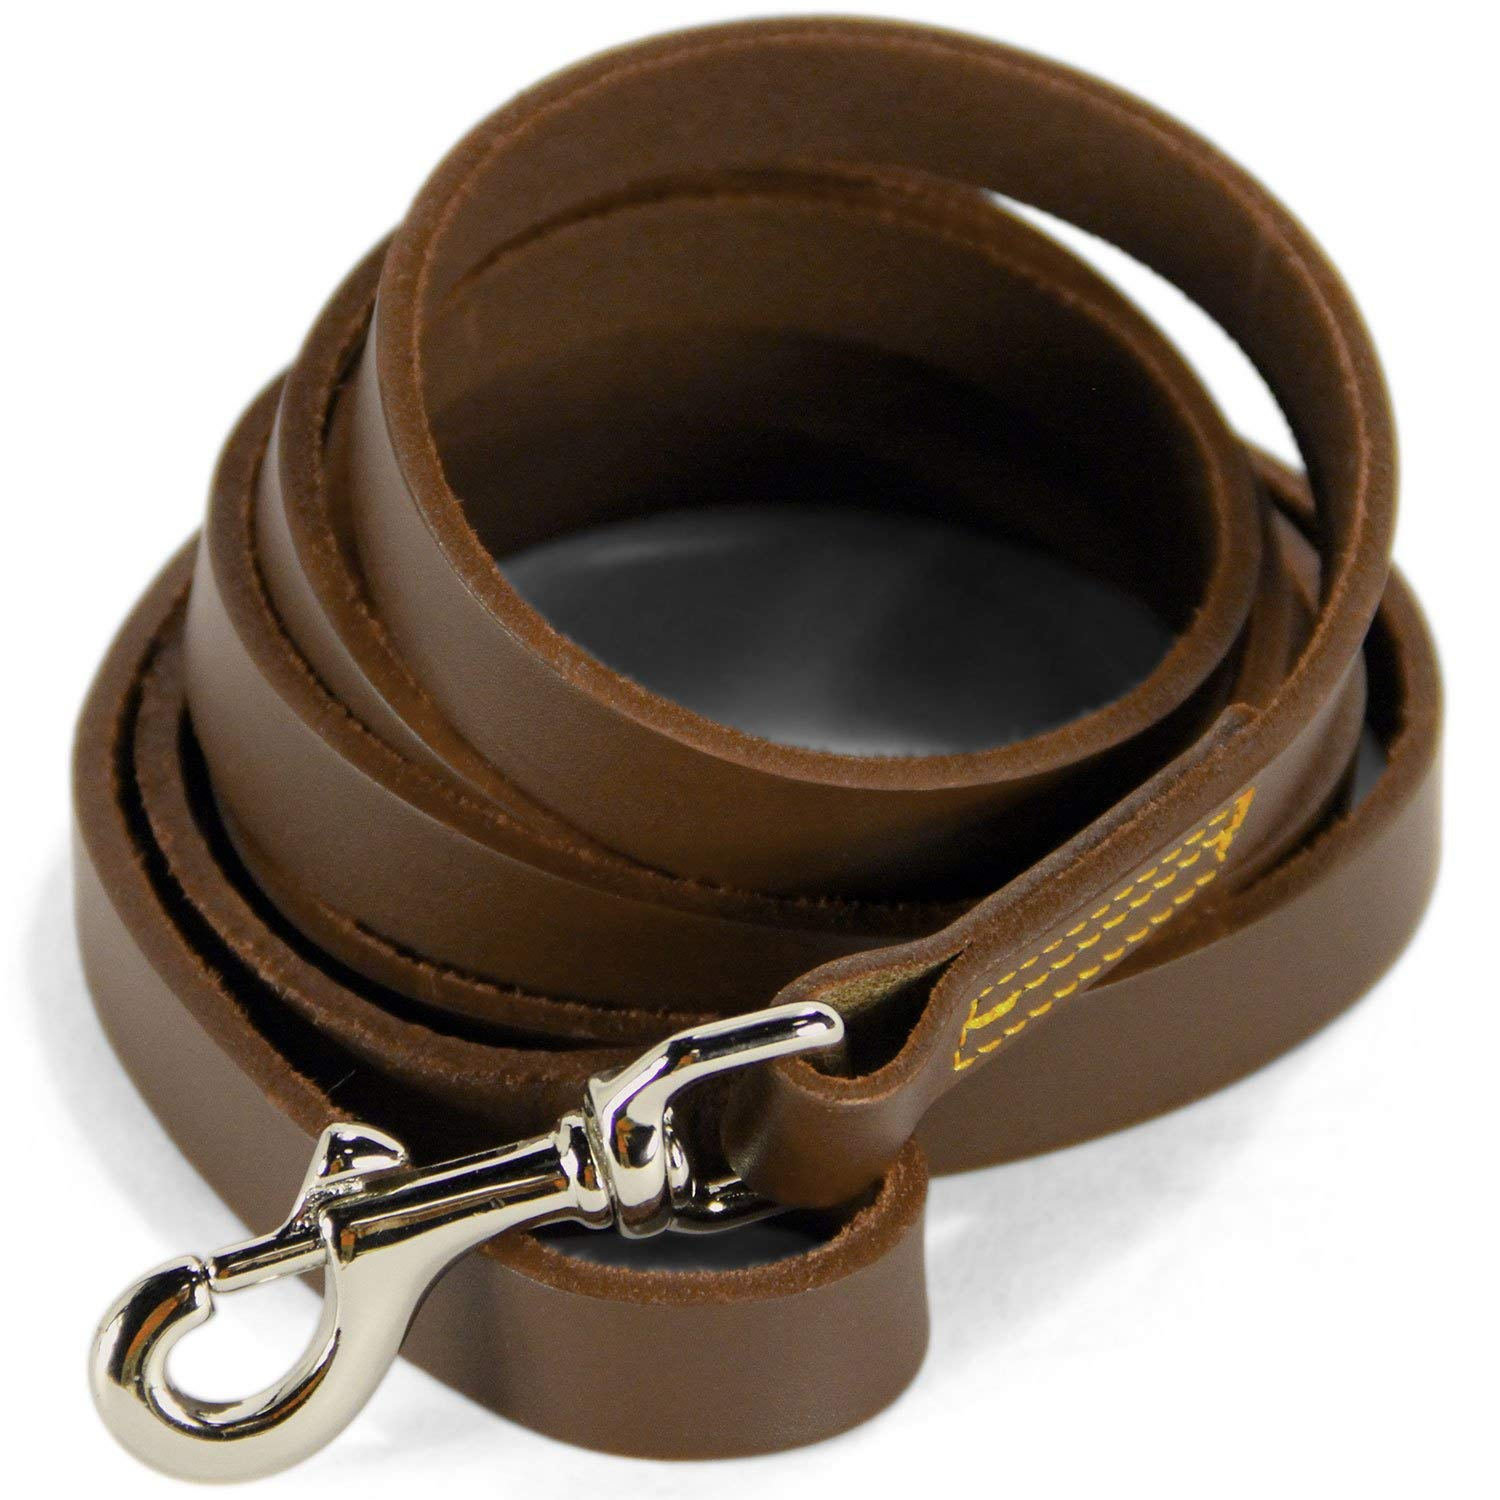 Logical Leather Dog Training Leash - Full Grain Leather Lead for Large Dogs - Brown by Logical Leather